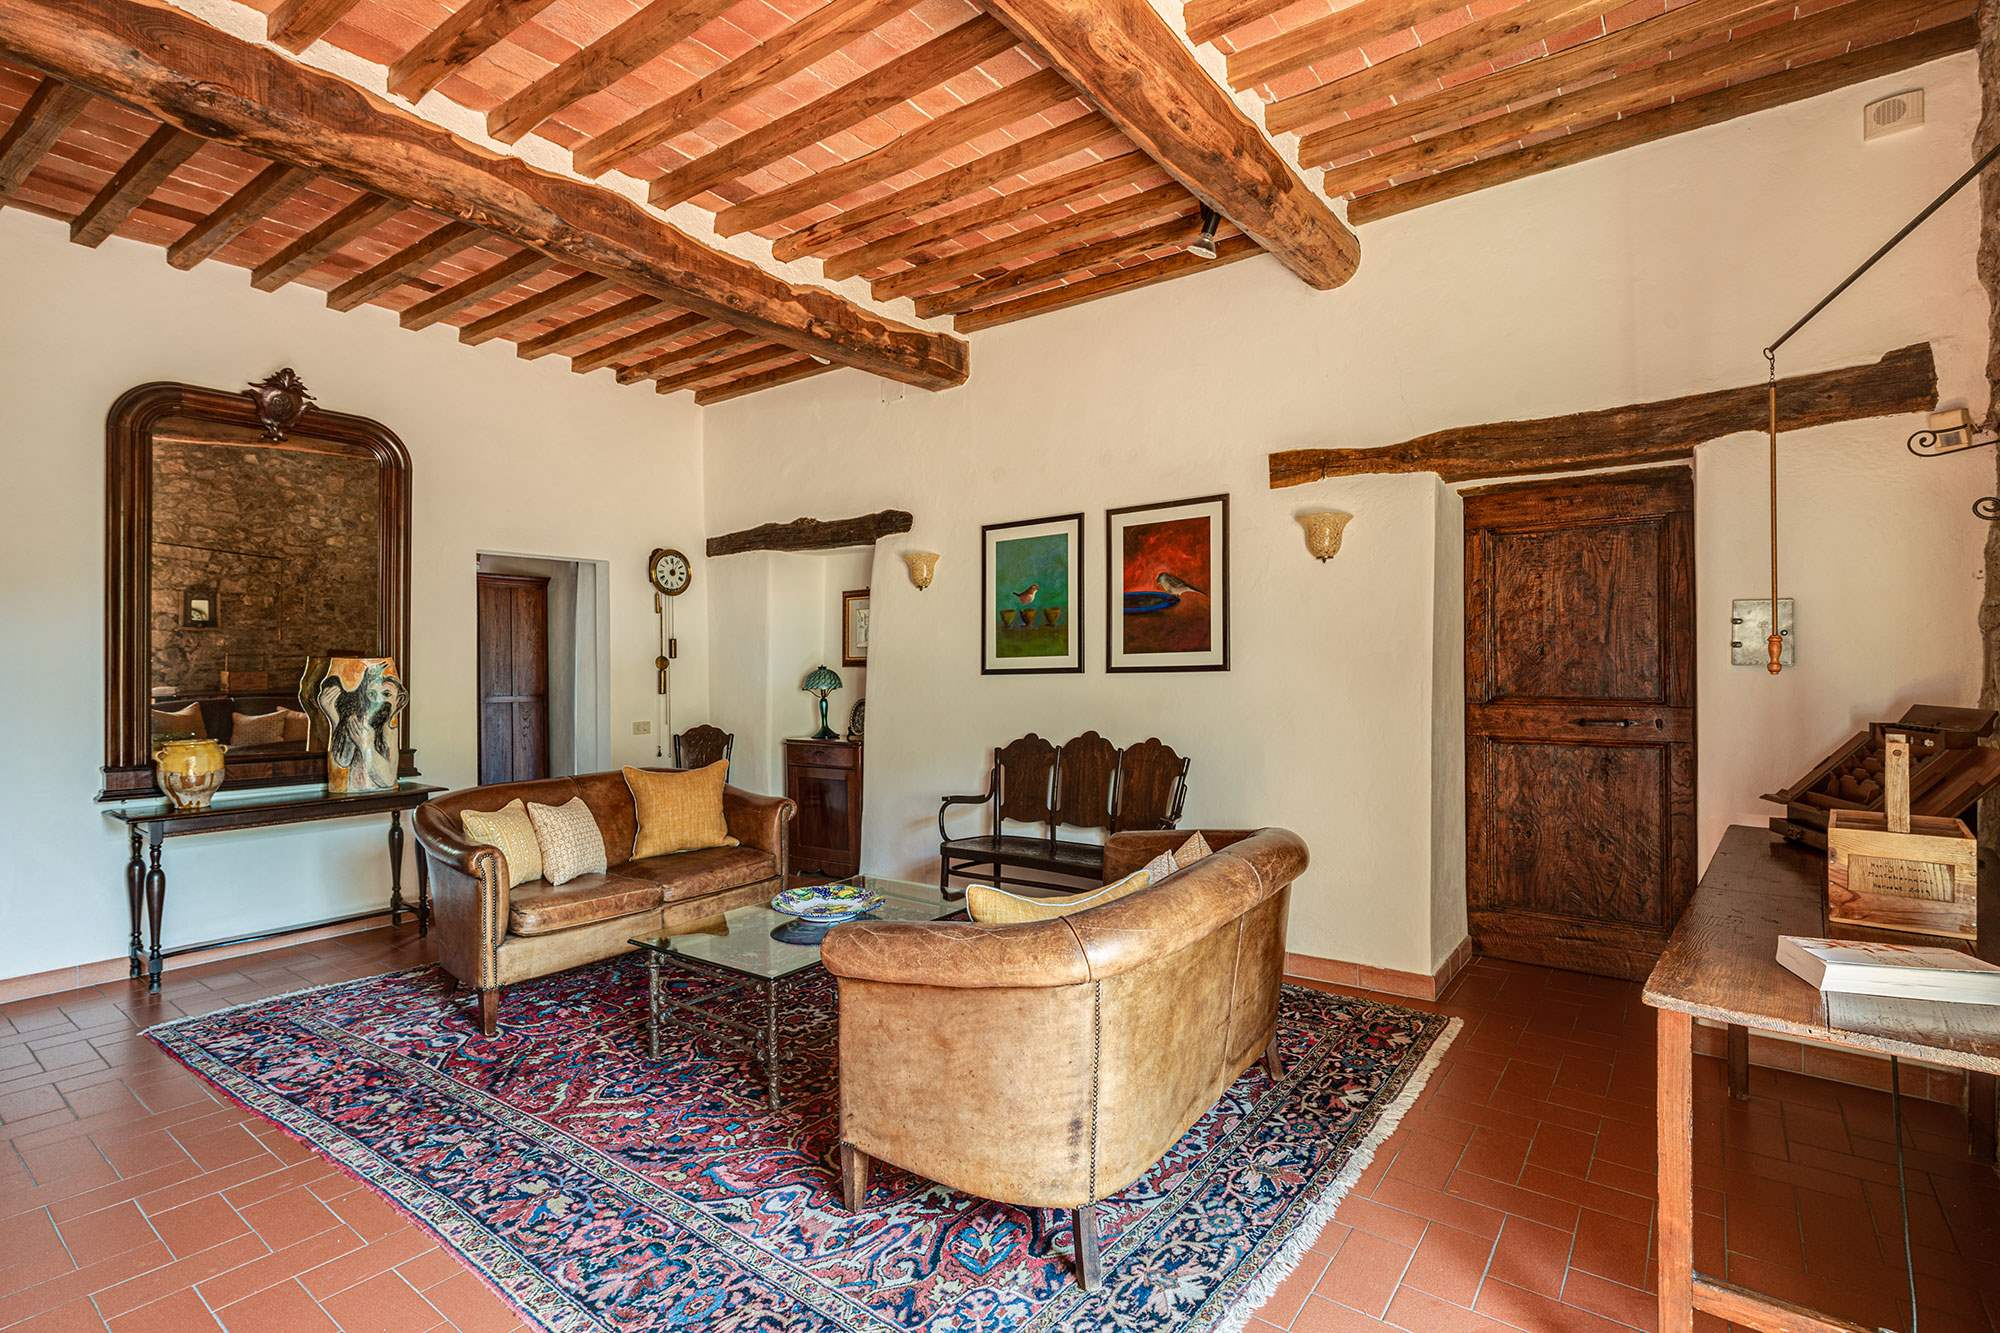 Villa Claudia, 6 Bedroom rate, 6 bedroom villa in Chianti & Countryside, Tuscany Photo #11